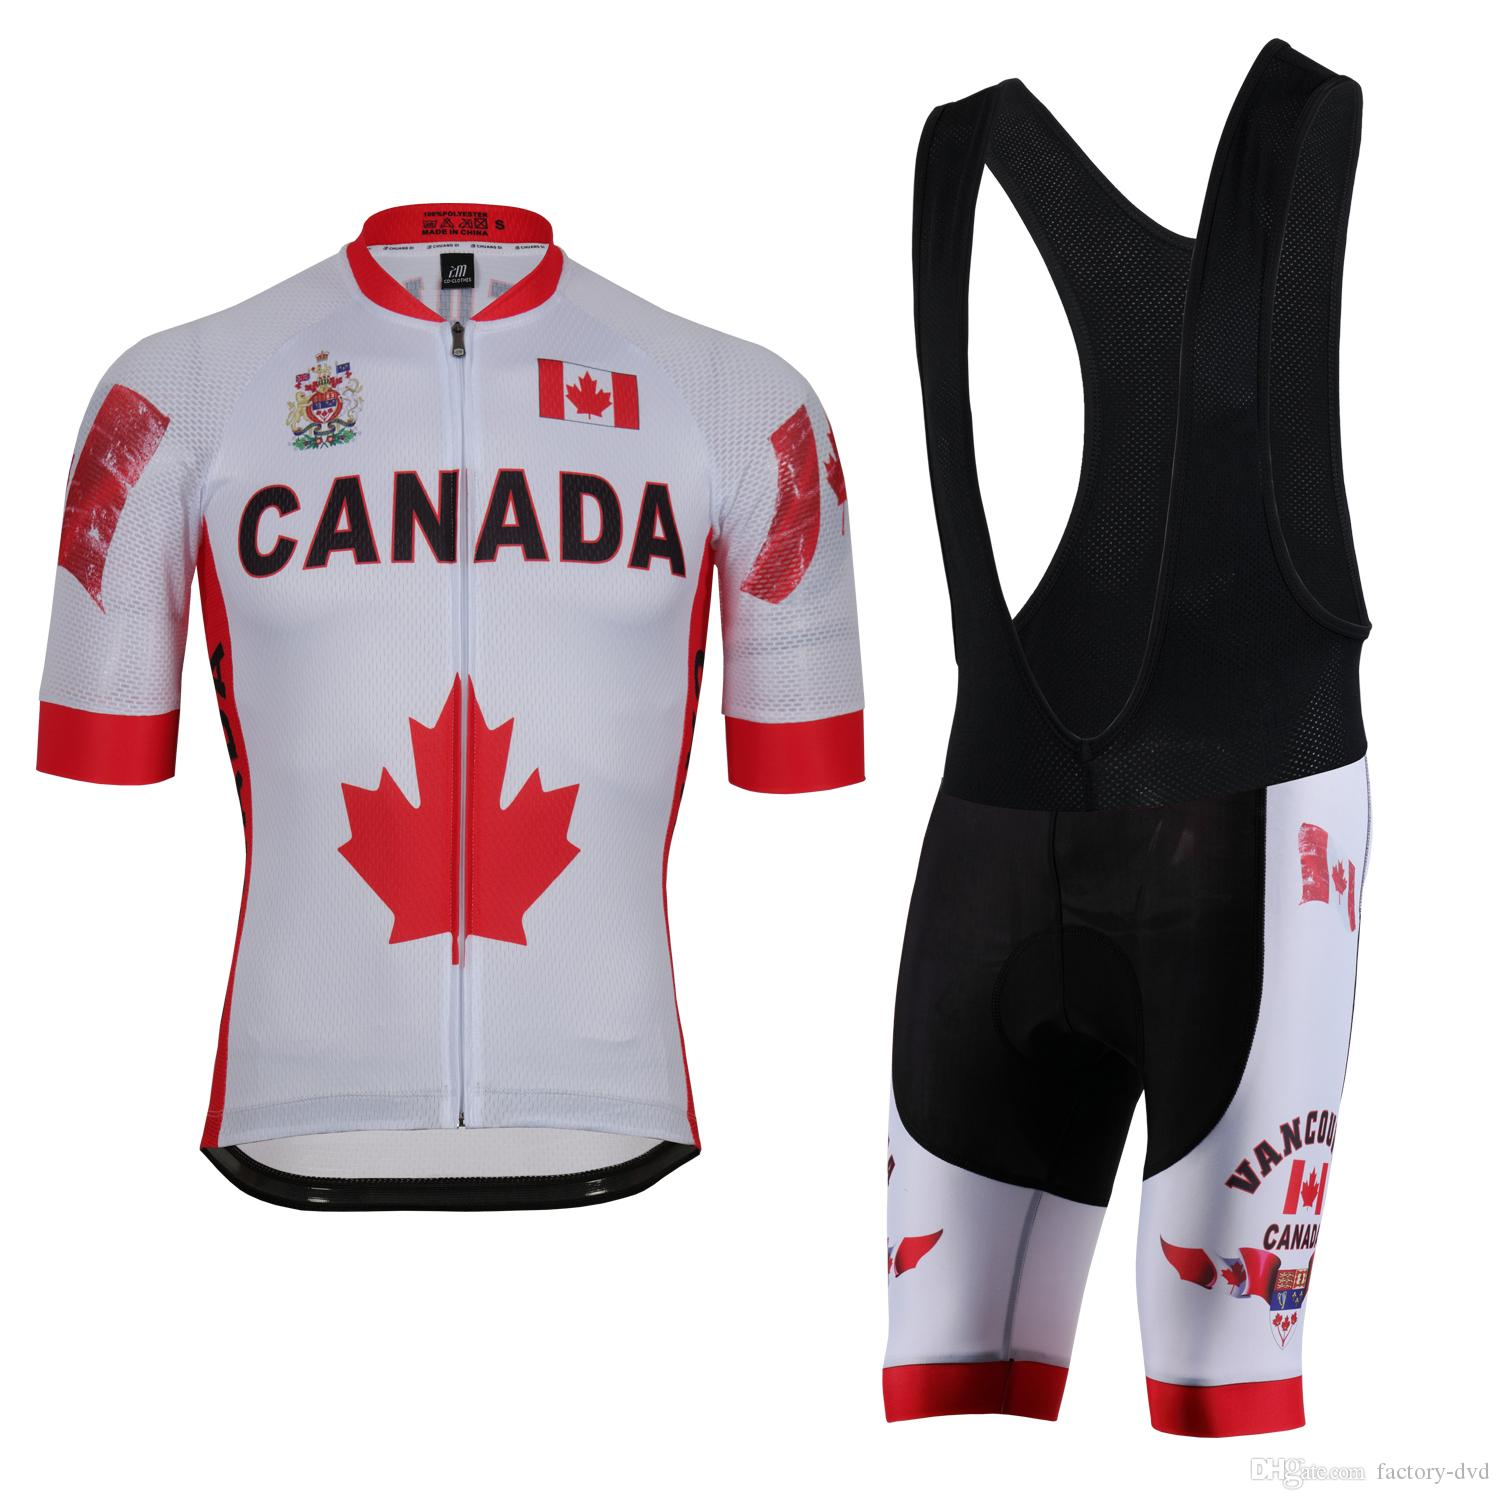 d19cf4a113839 Canada Cycling Jersey Polyester Quick Dry Pro Bike Jersey MTB Ropa Ciclismo  Team Sky Bicycling Maillot Shirts Cycle Clothes Biking Jerseys From Factory  Dvd